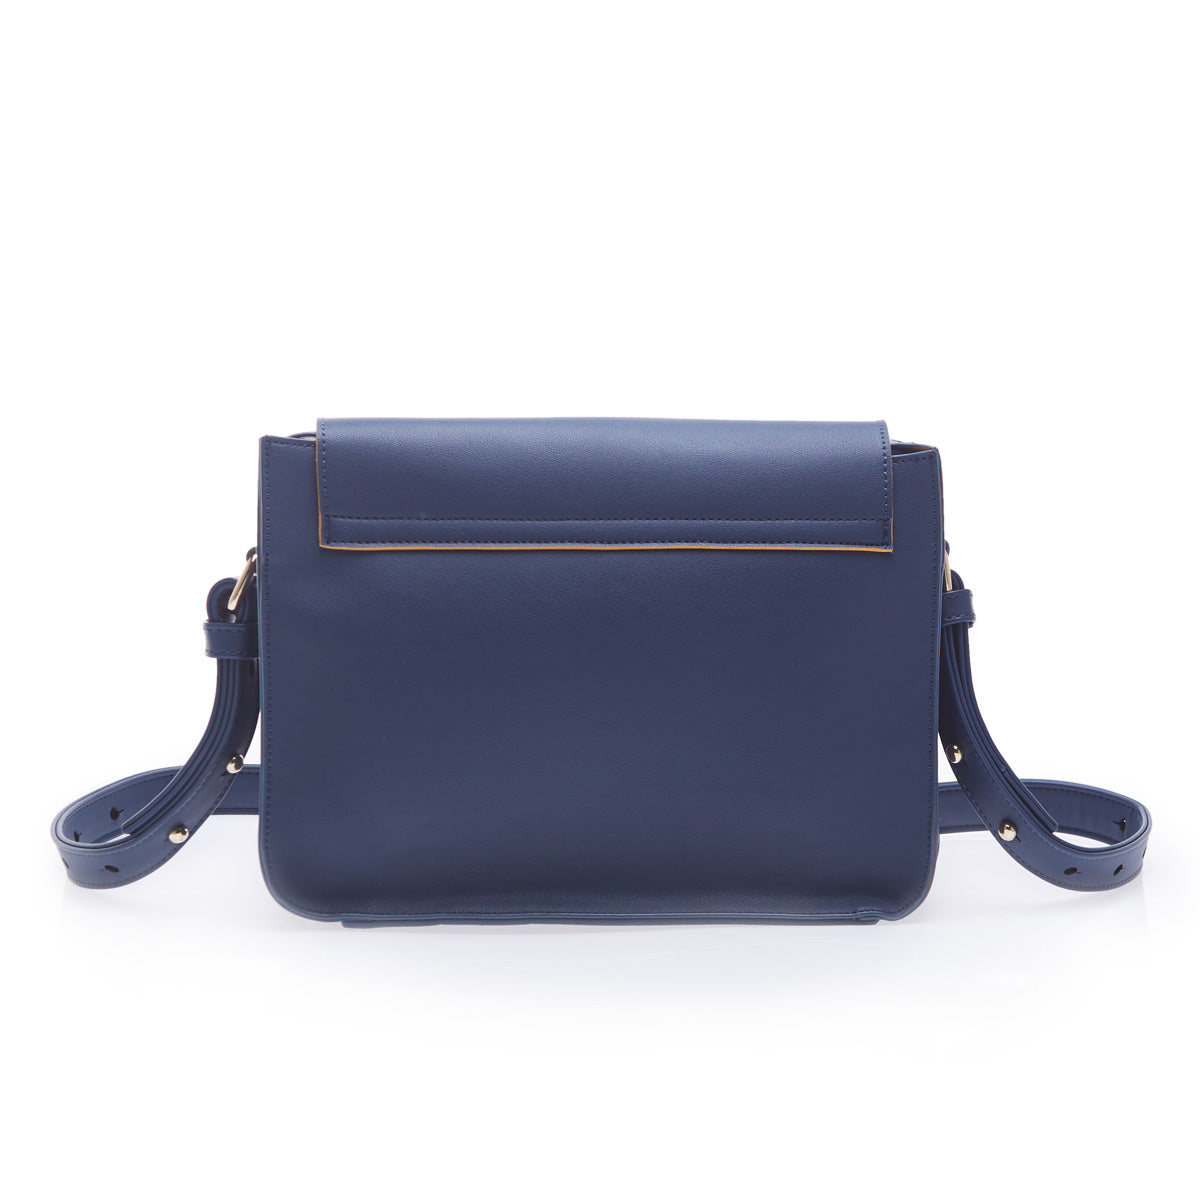 ESATCH M - NAVY